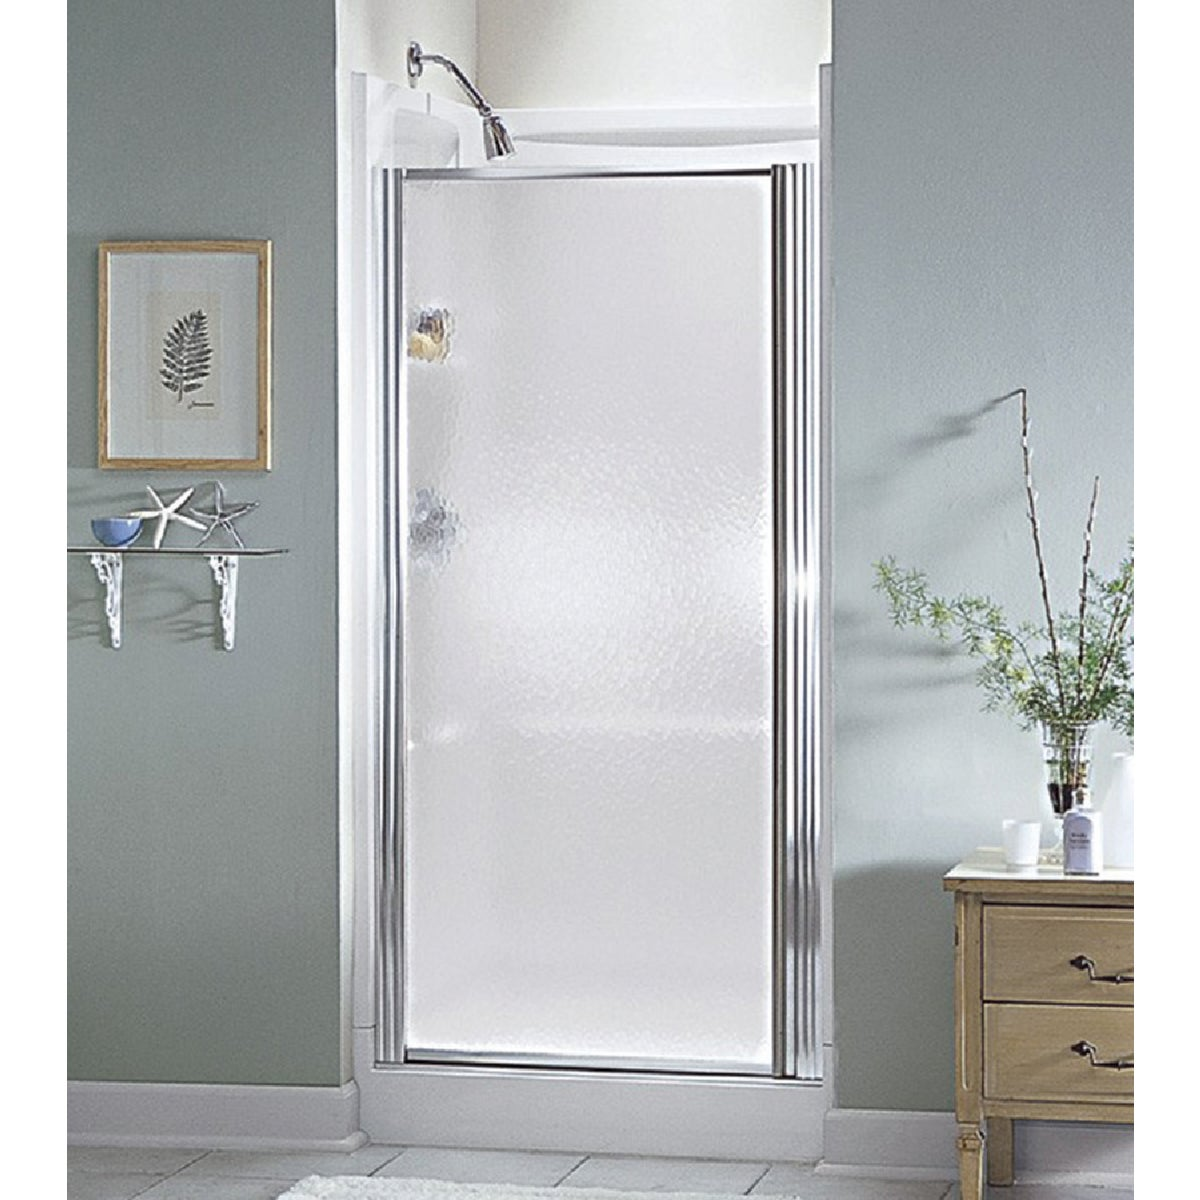 SILVER HINGED SHWR DOOR - 950C-36S by Sterling Doors